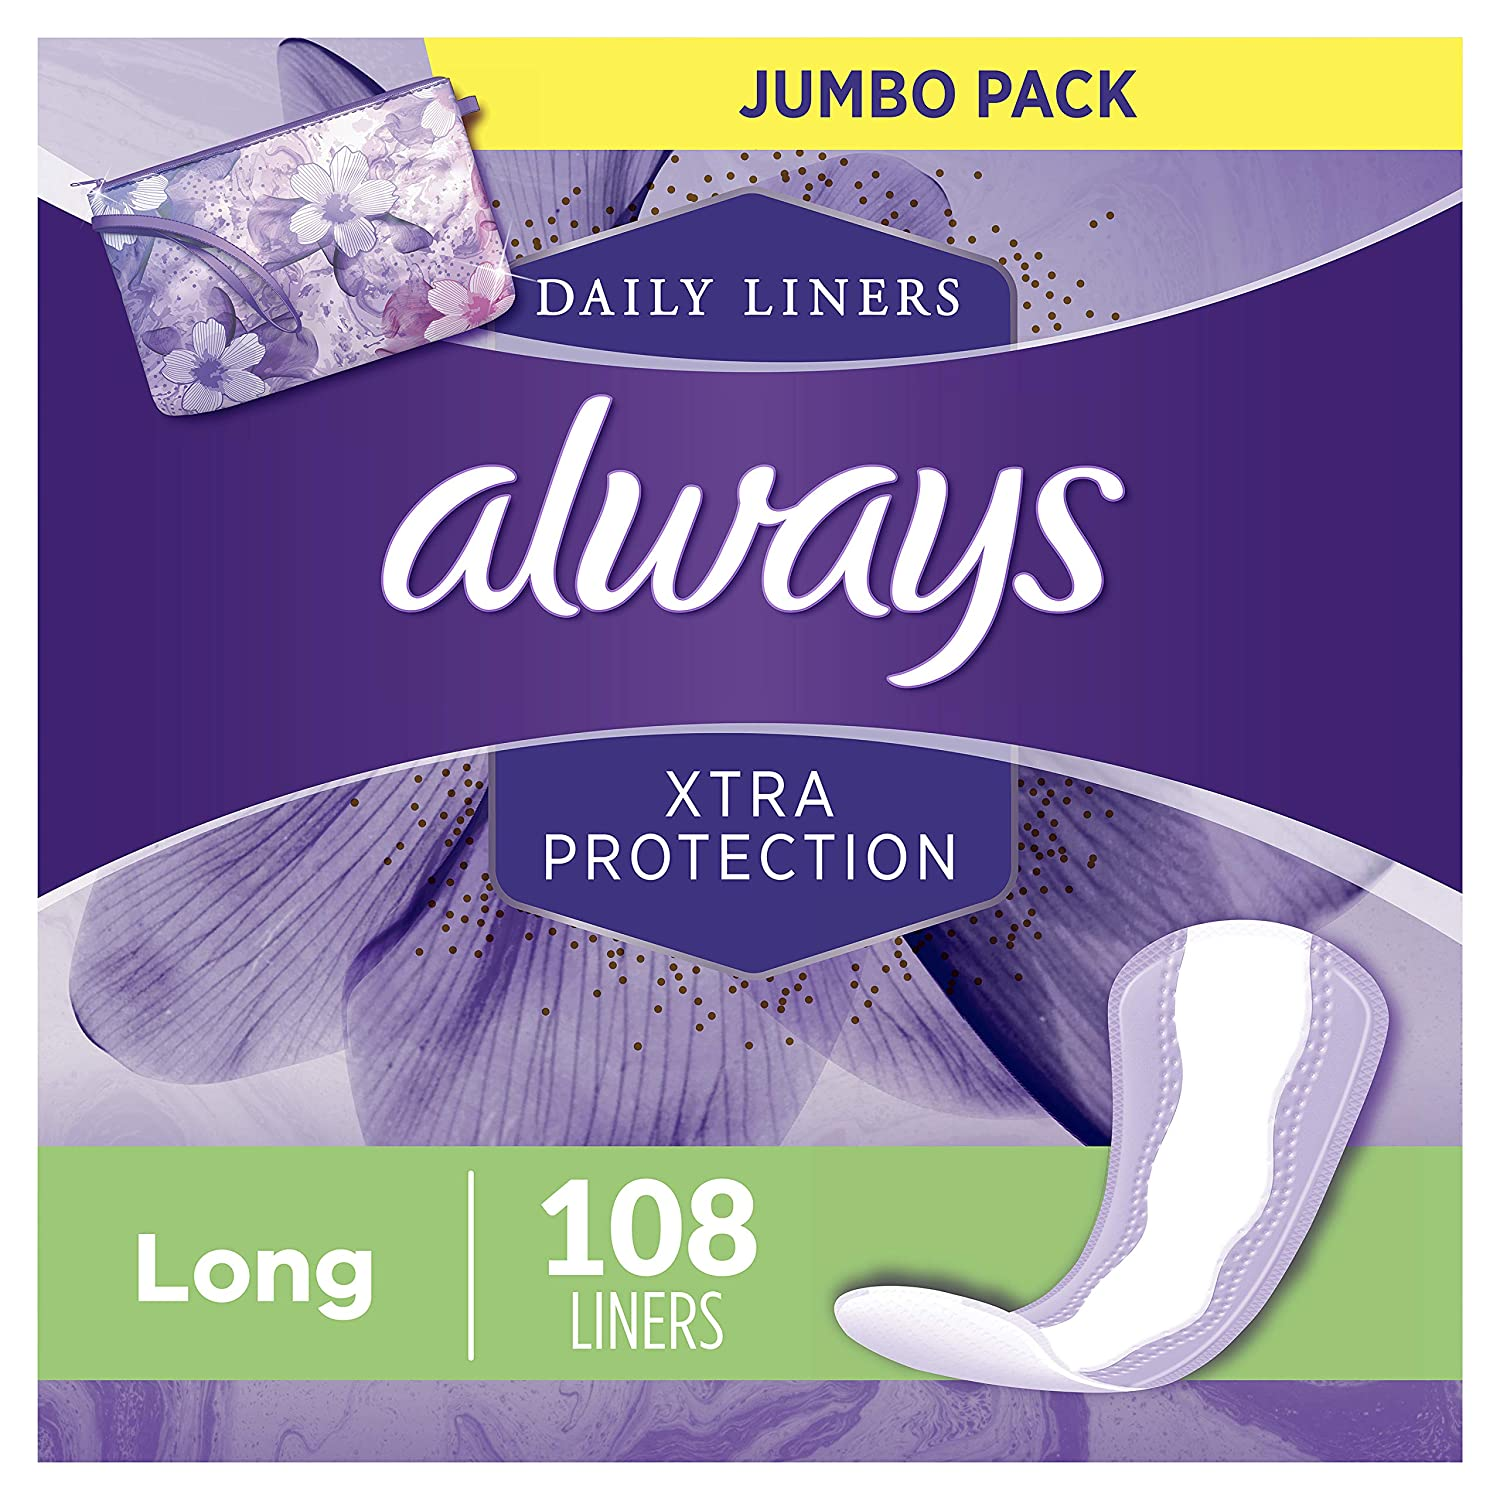 2 pack 108 Count each Always Xtra Protection Long Daily Liners Unscented for $11.23